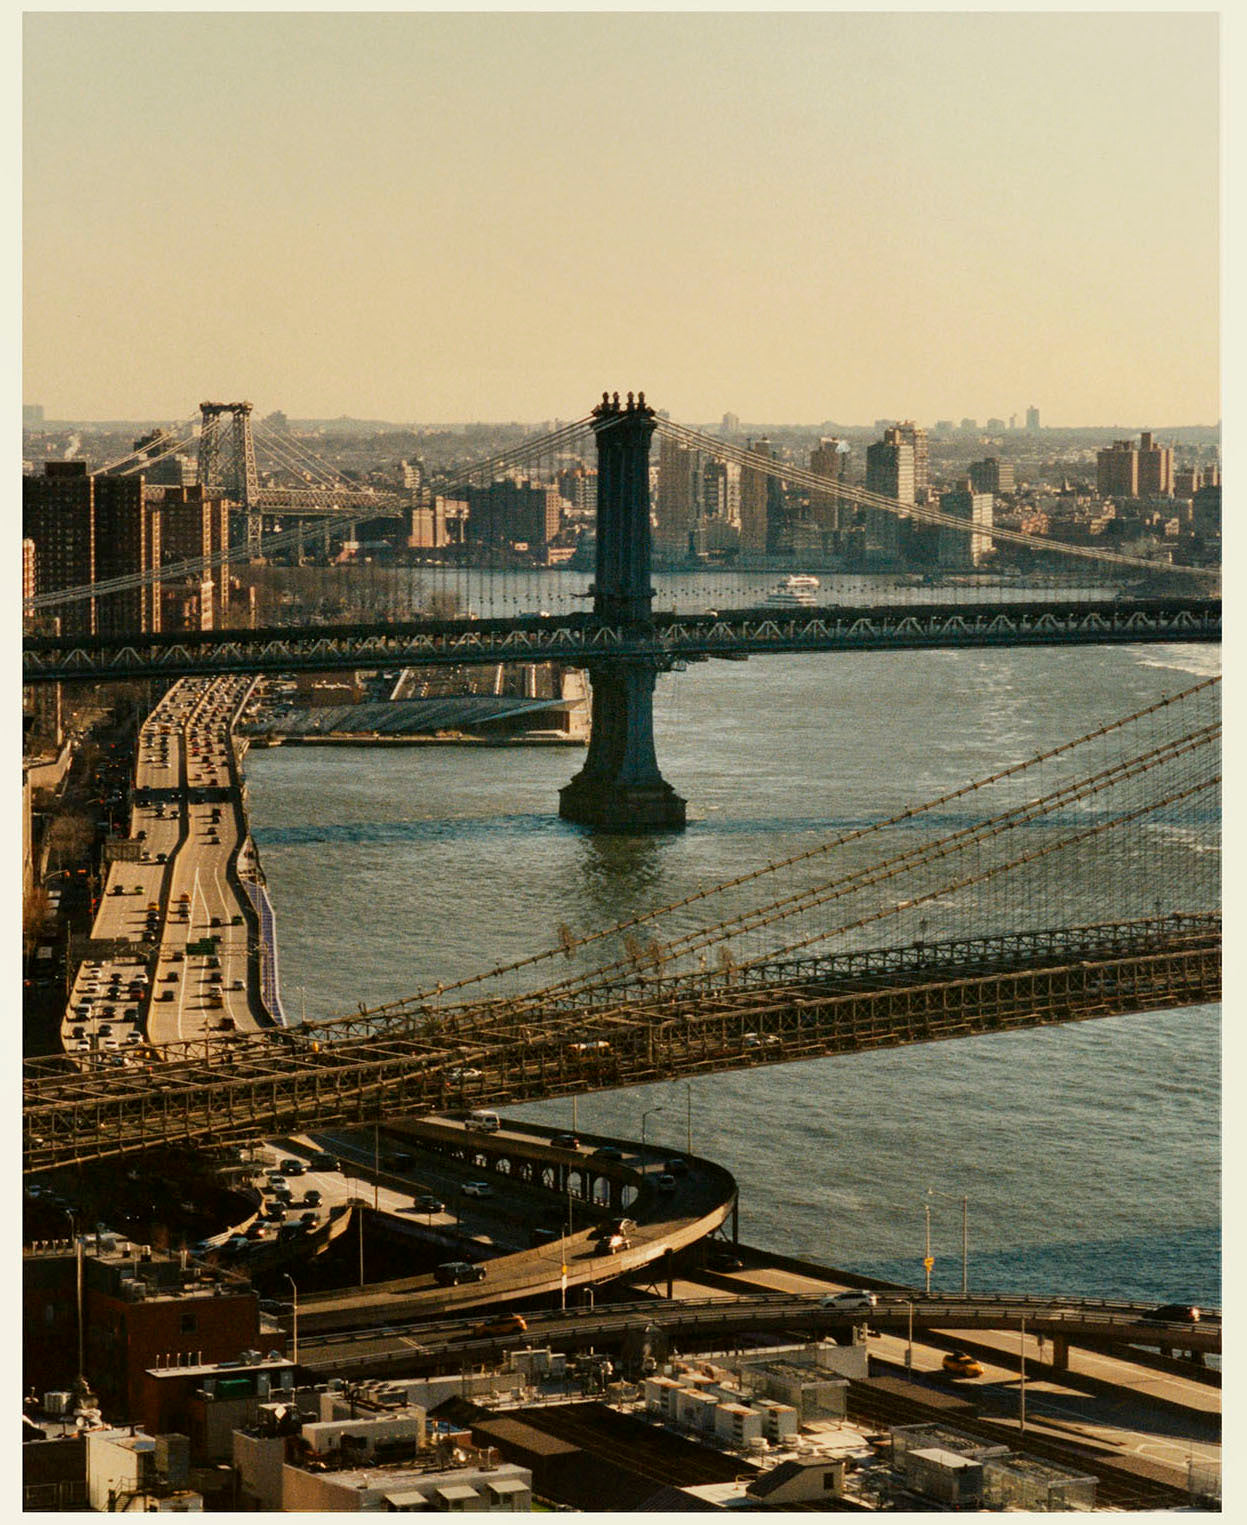 Quentin de Briey NYC Bridges - Adsum